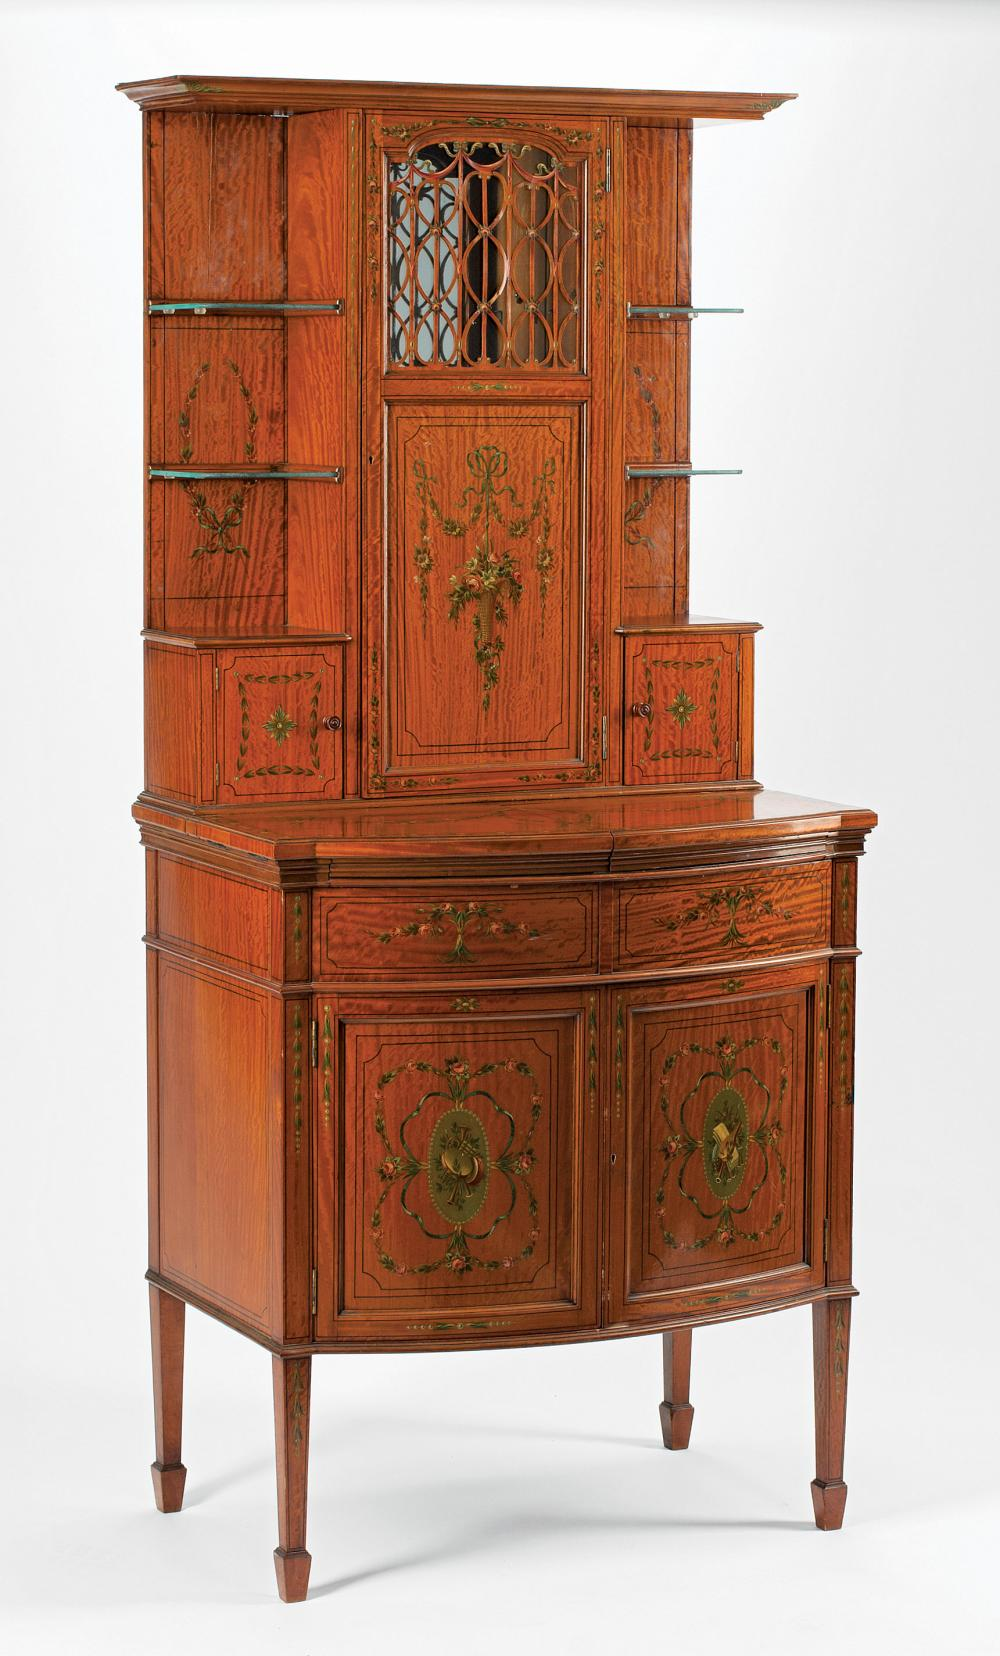 Paint-Decorated Satinwood Drinks Cabinet